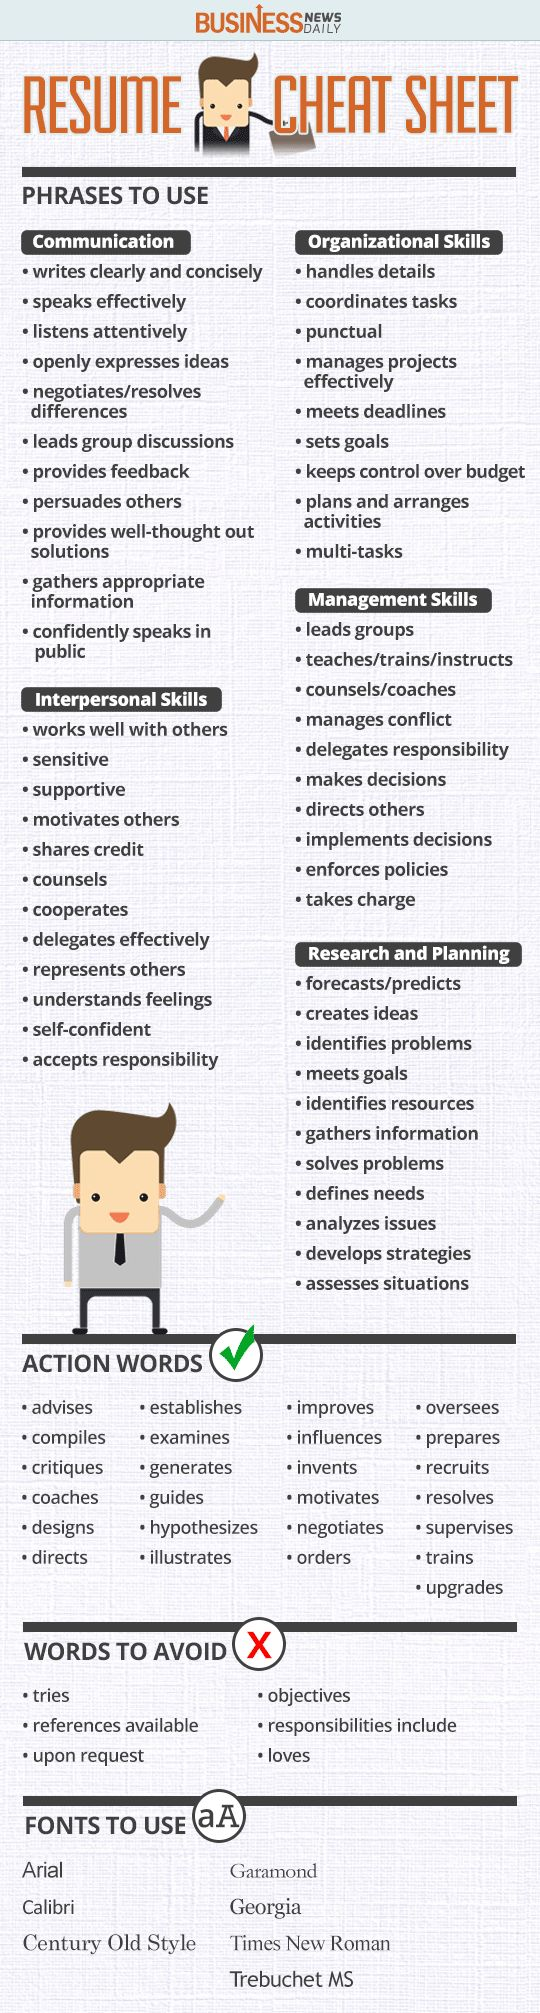 Opposenewapstandardsus  Personable  Ideas About Resume On Pinterest  Cv Format Resume  With Fascinating Resume Cheat Sheet Infographic Andrews Almost Done With A Complete Unit On Employment Which With Attractive Resume Cover Letters Examples Also High School Student Resume Templates In Addition Technician Resume And Resume Reference Template As Well As Resume Parser Additionally Technology Resume From Pinterestcom With Opposenewapstandardsus  Fascinating  Ideas About Resume On Pinterest  Cv Format Resume  With Attractive Resume Cheat Sheet Infographic Andrews Almost Done With A Complete Unit On Employment Which And Personable Resume Cover Letters Examples Also High School Student Resume Templates In Addition Technician Resume From Pinterestcom